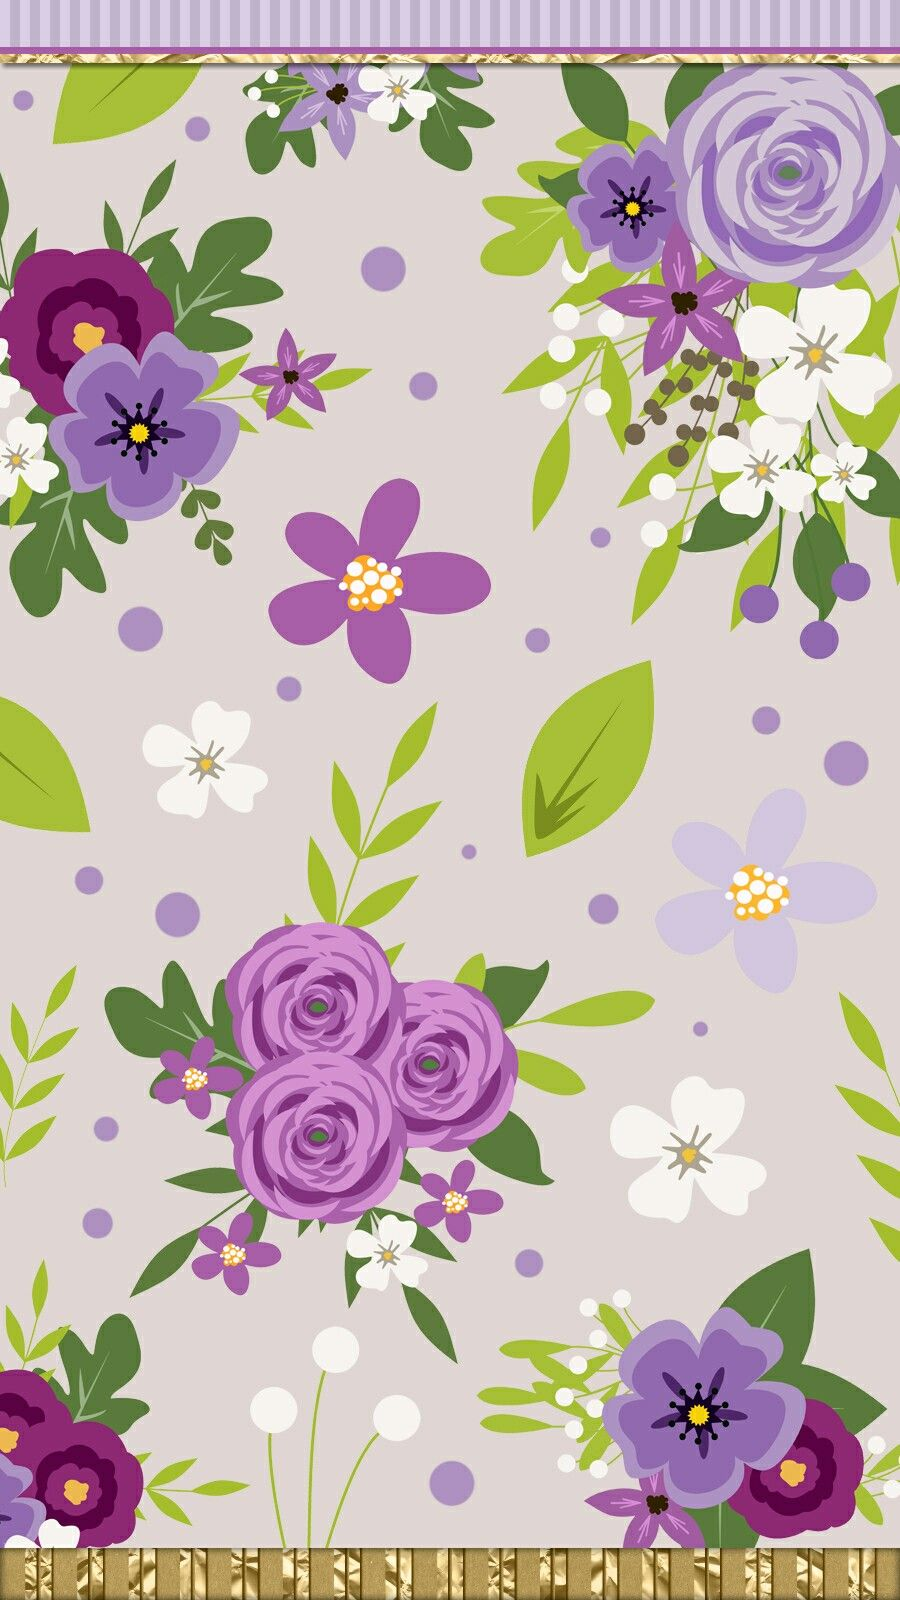 Download Wallpaper Hello Kitty Floral - 0dd0d0b84df1ee7d78335ebd8a616dab  You Should Have_553751.jpg